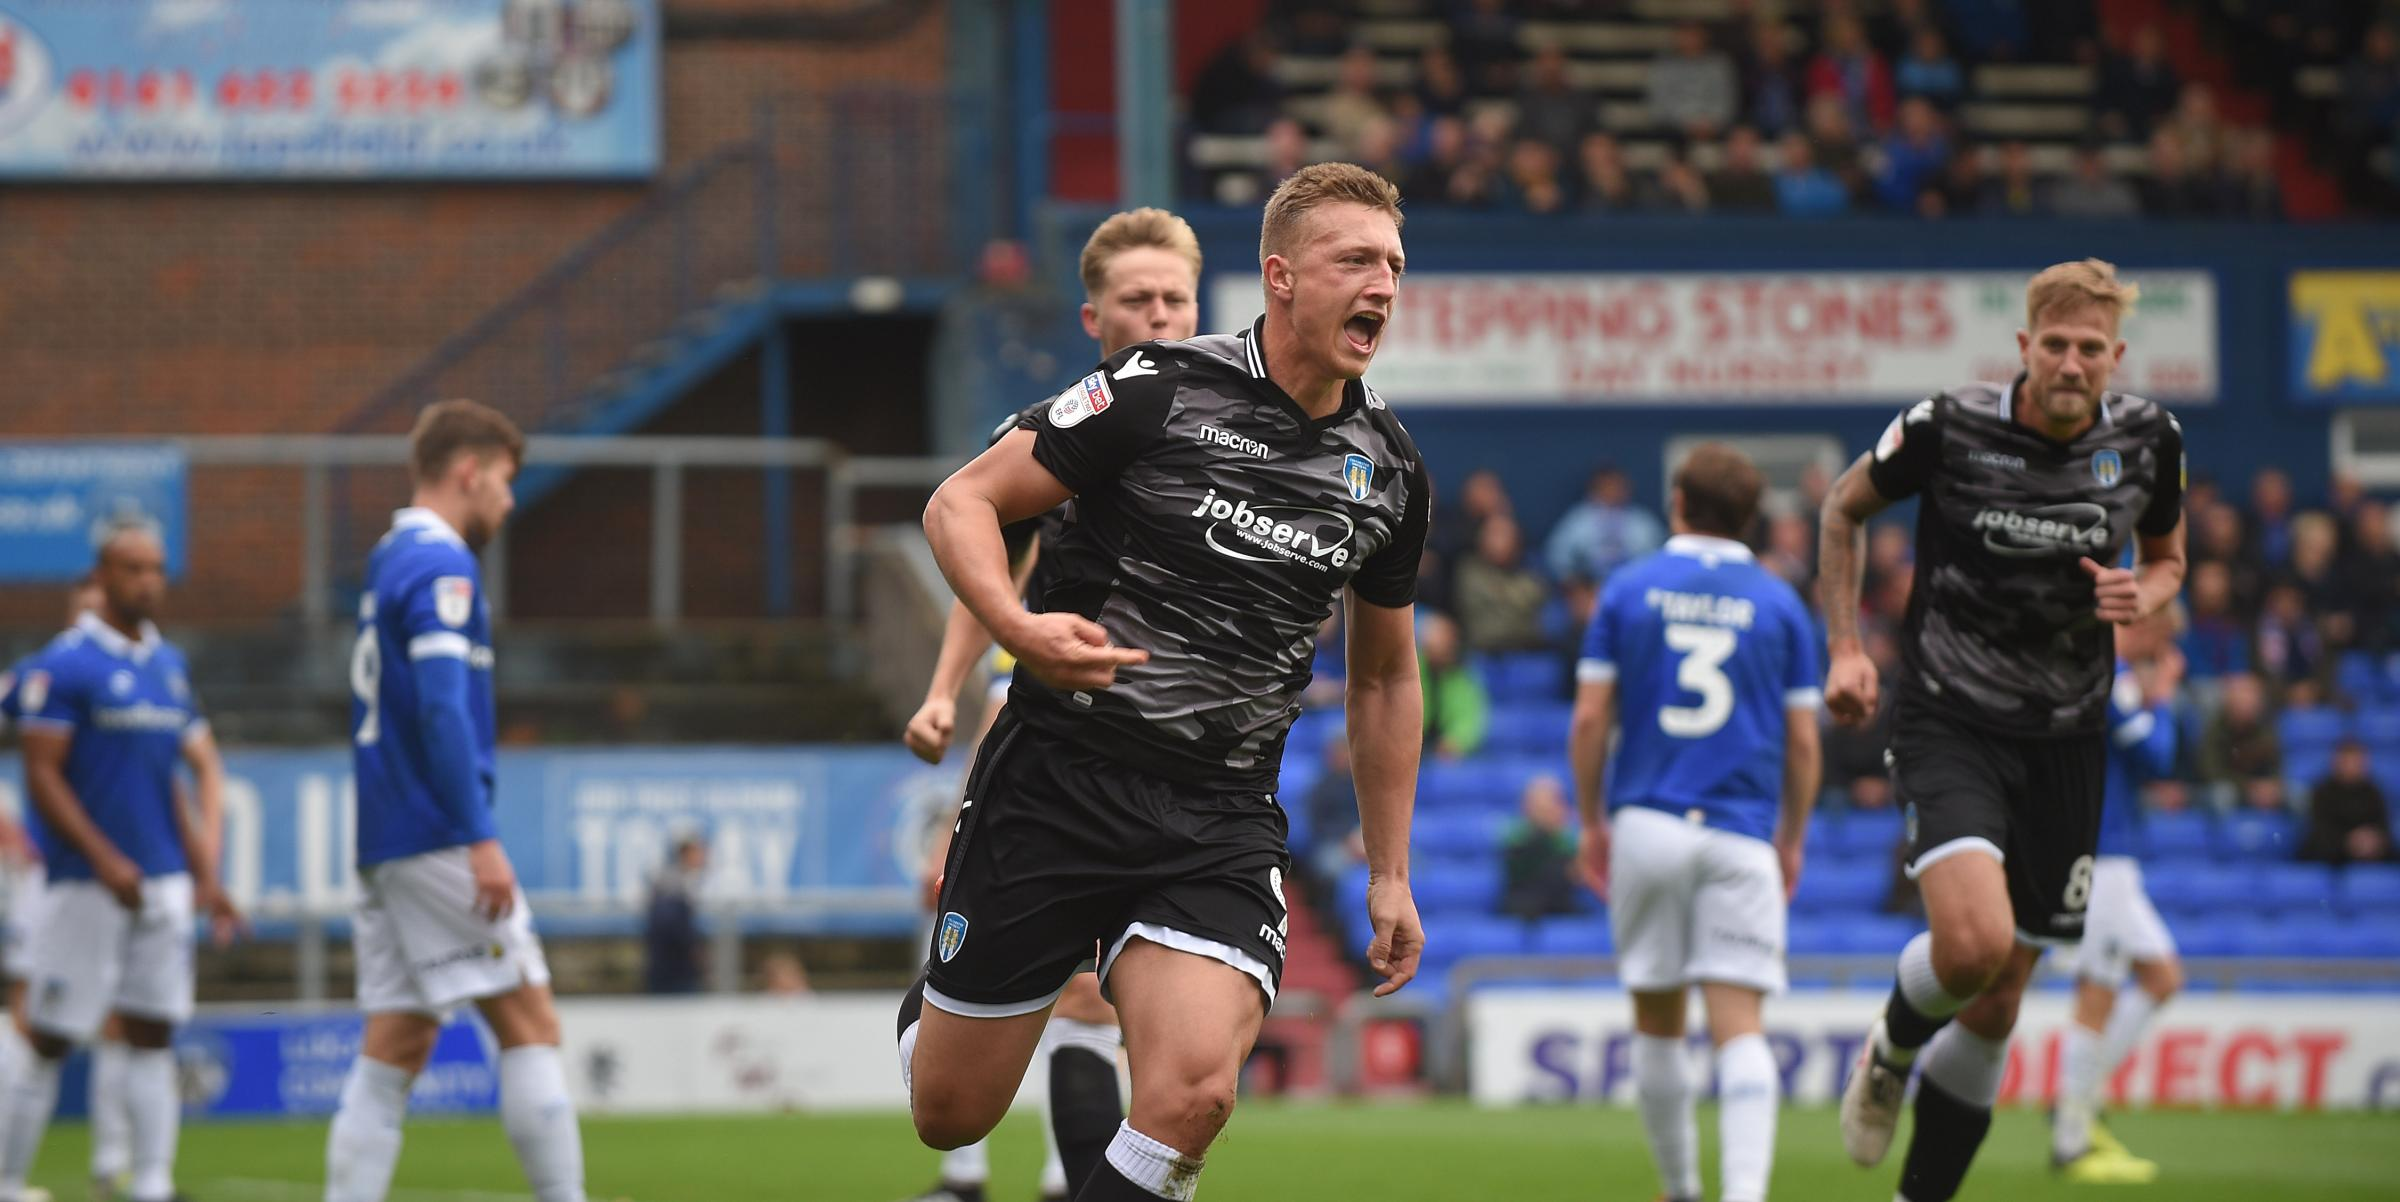 Sidelined - Colchester United striker Luke Norris injured his ankle against Swindon Town  Picture: PAGEPIX